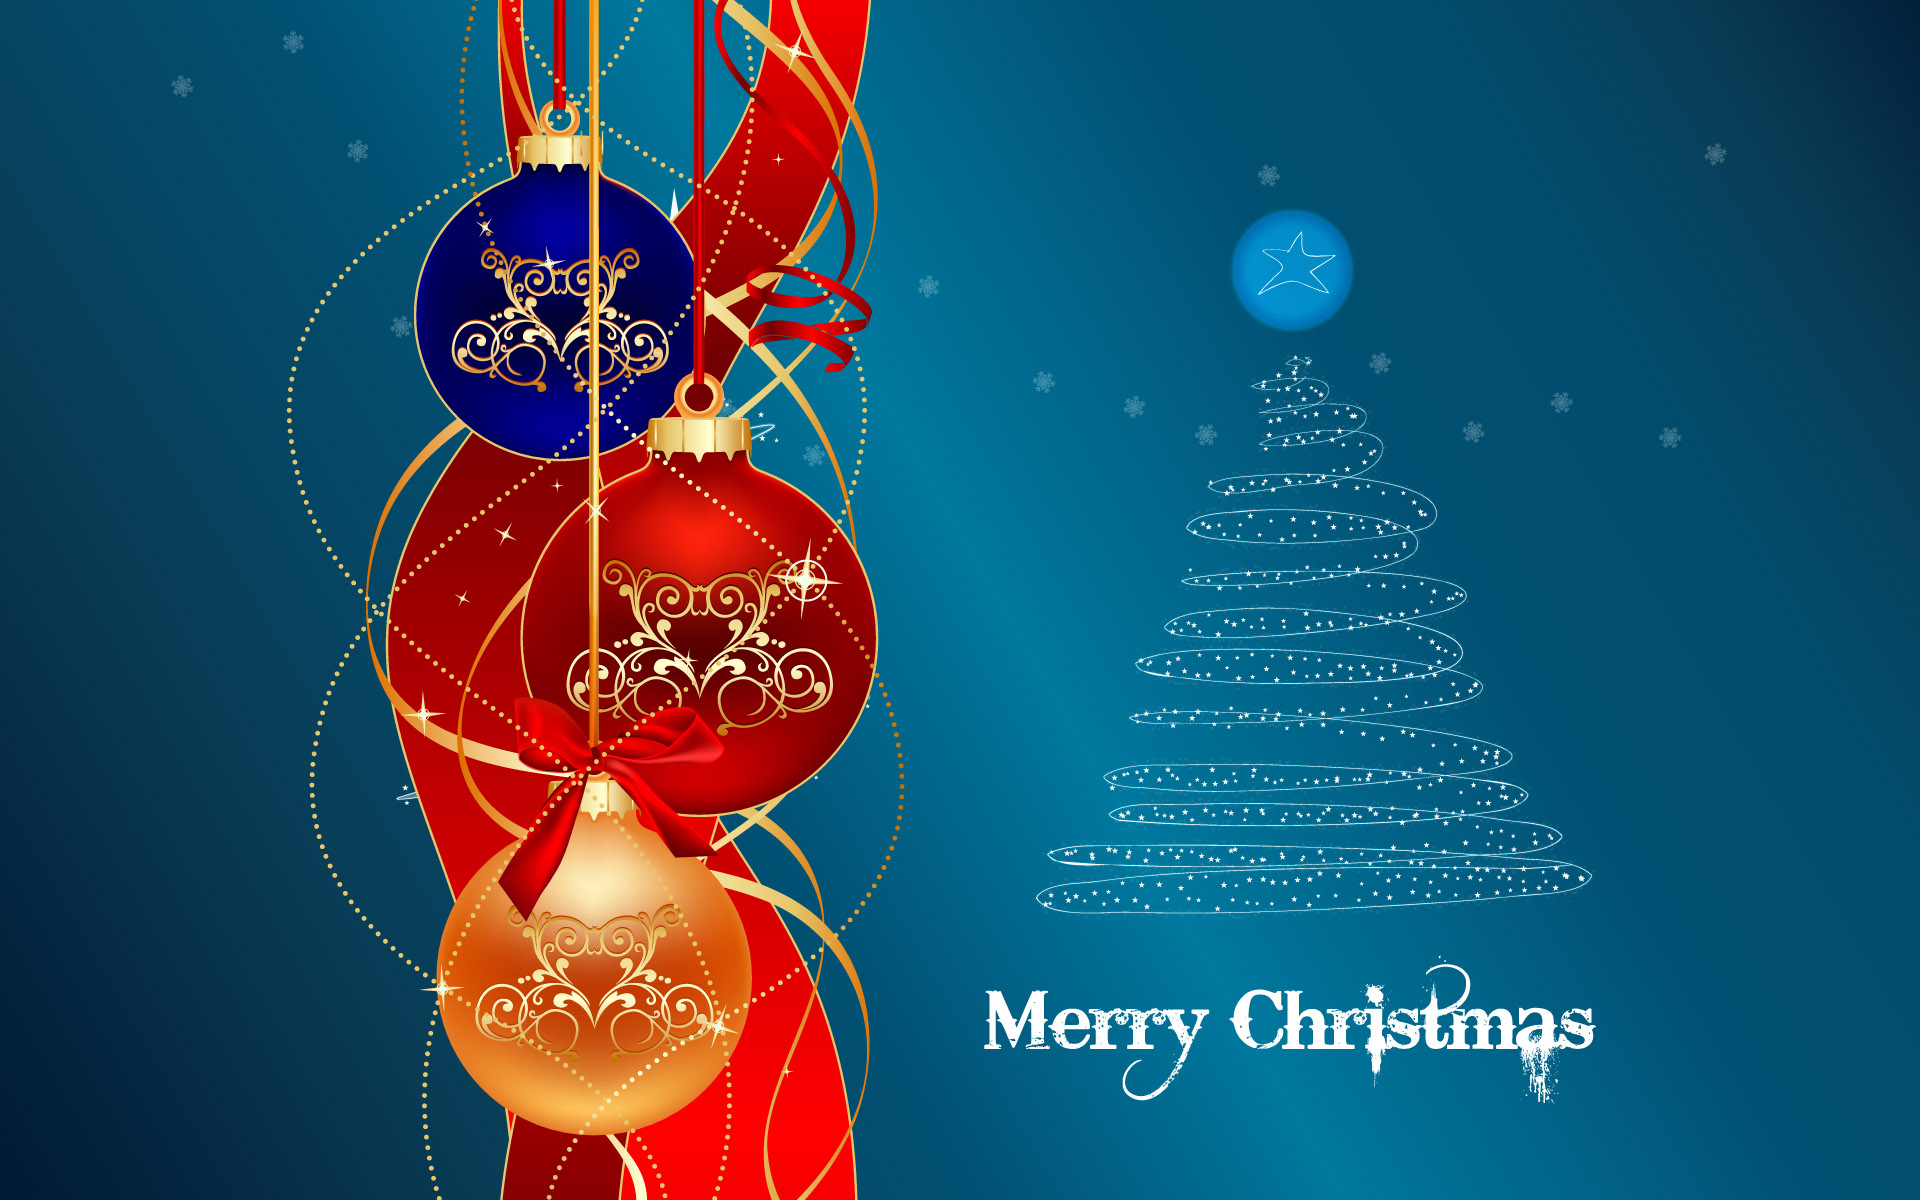 3d Xmas Tree Live Wallpaper Christmaswallpapers18 New Wallpapers For Christmas Page 2